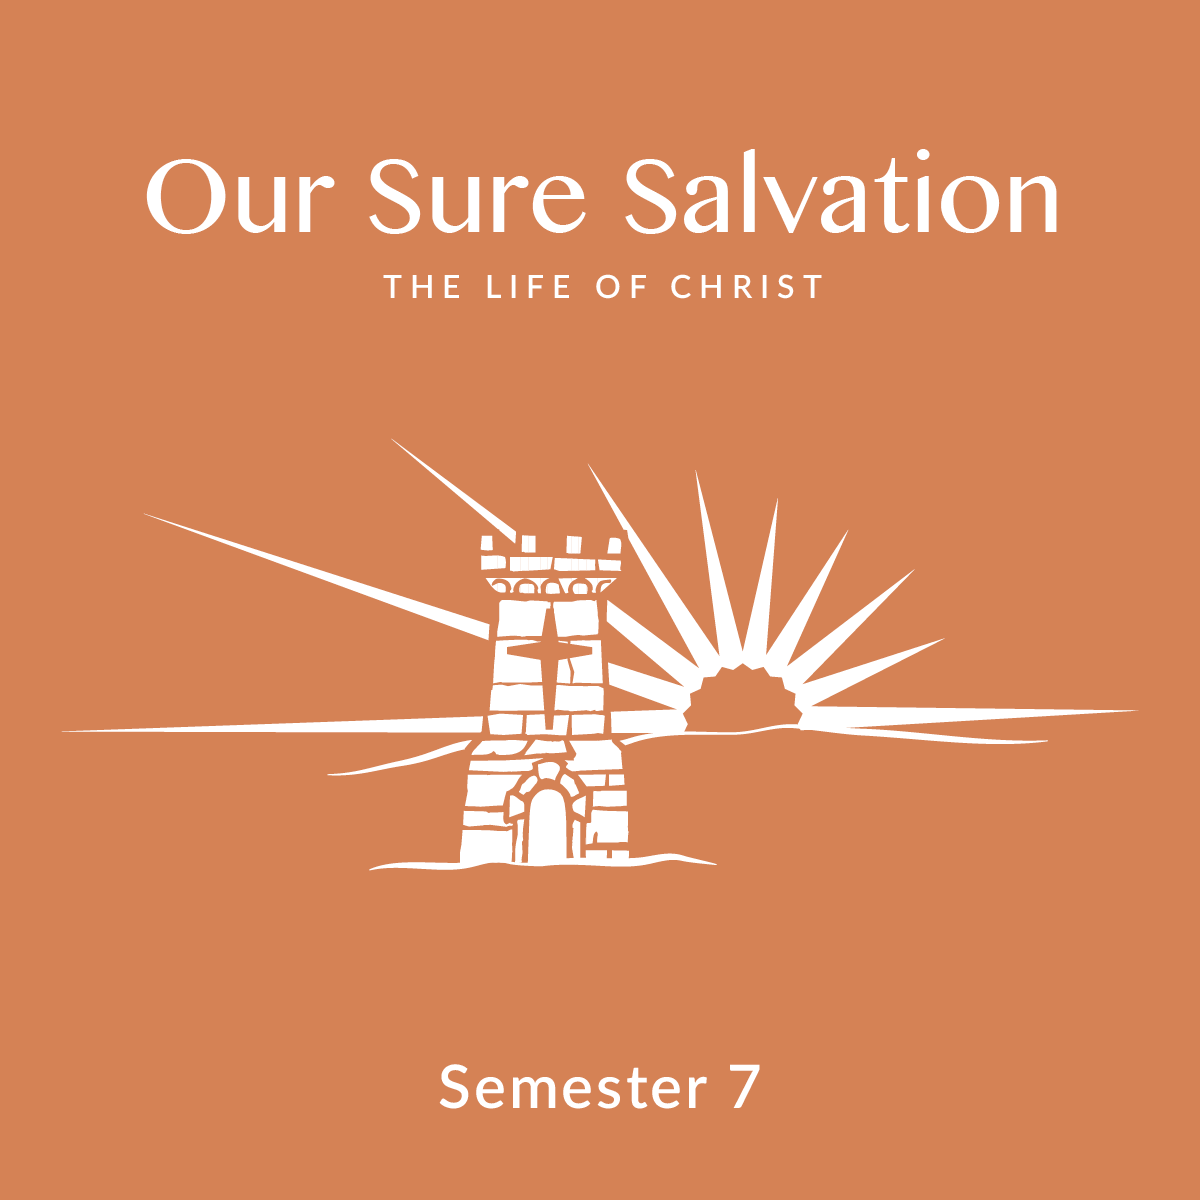 Semester 7: Our Sure Salvation